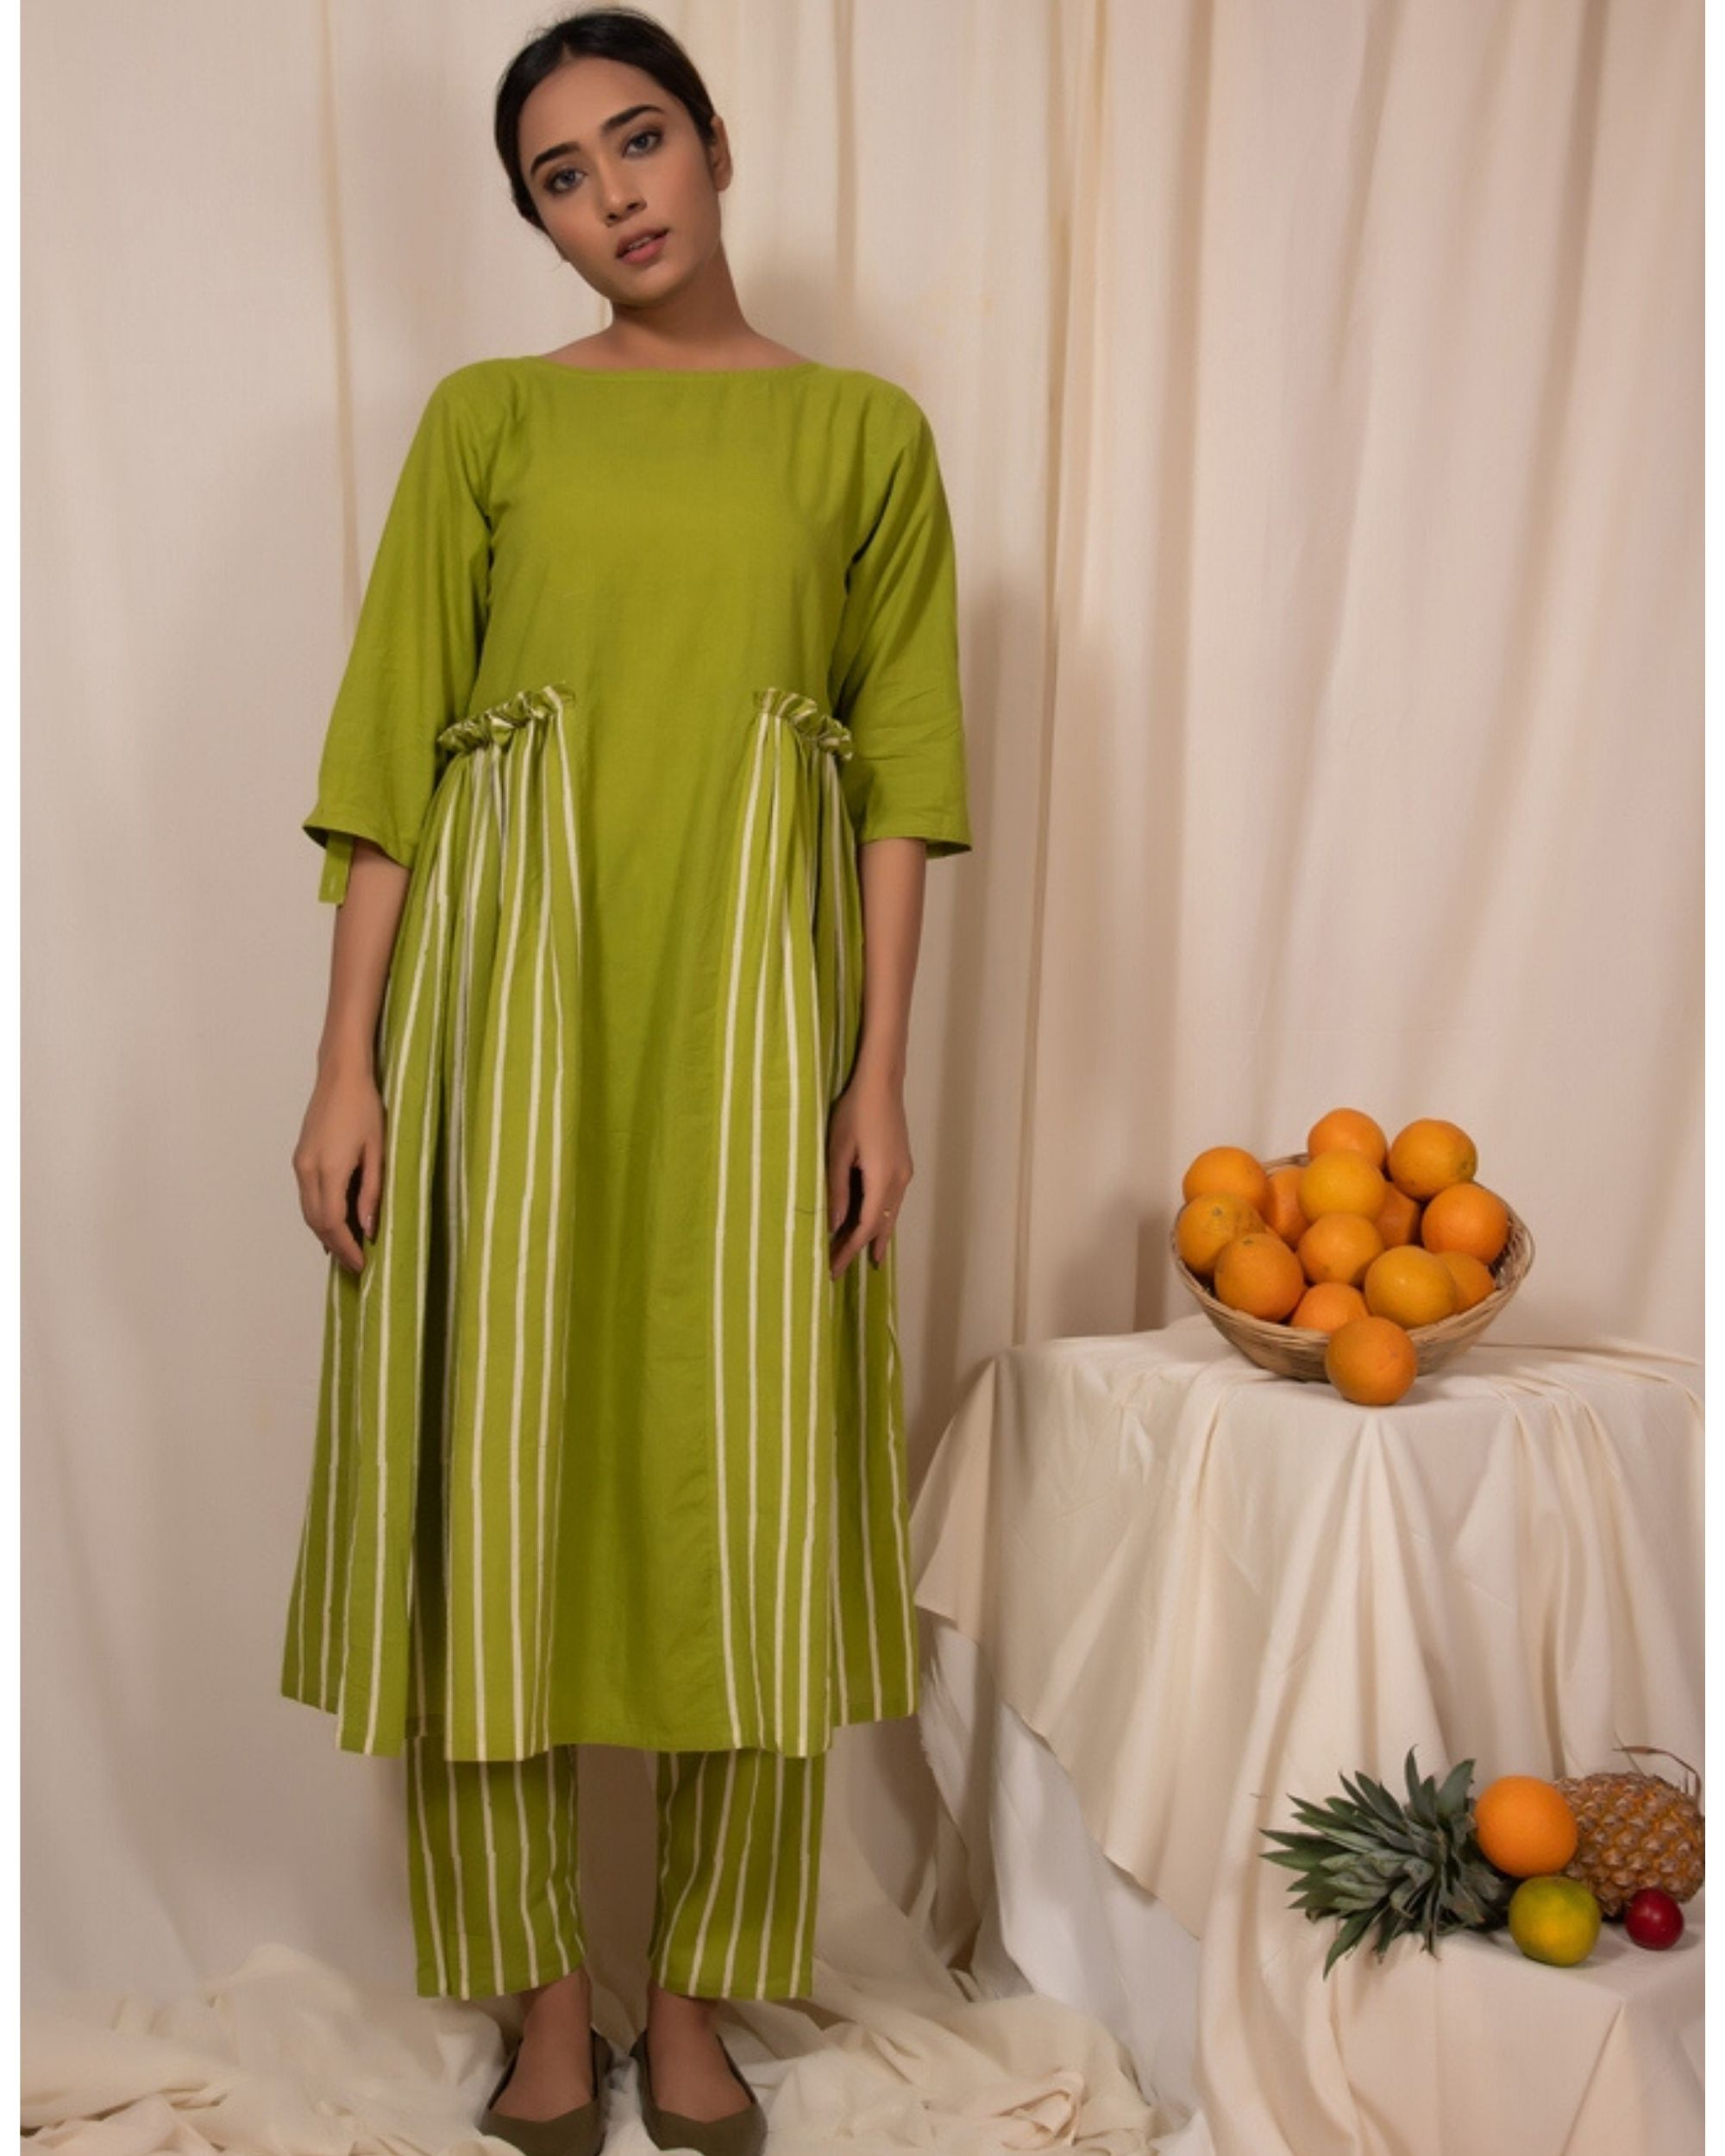 Lime green paneled dress